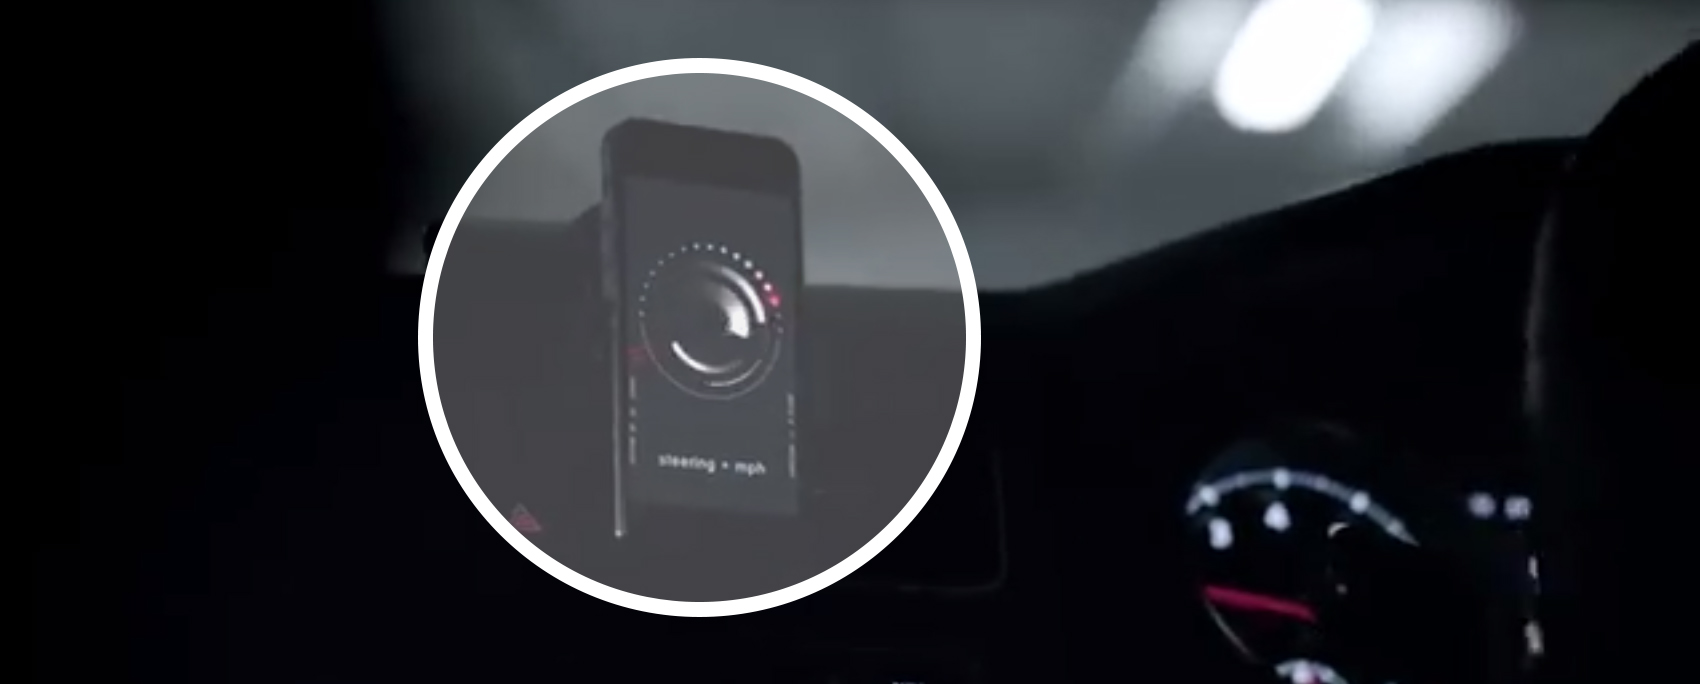 VW's app also detects acceleration and turning forces and converts these into audio track changes